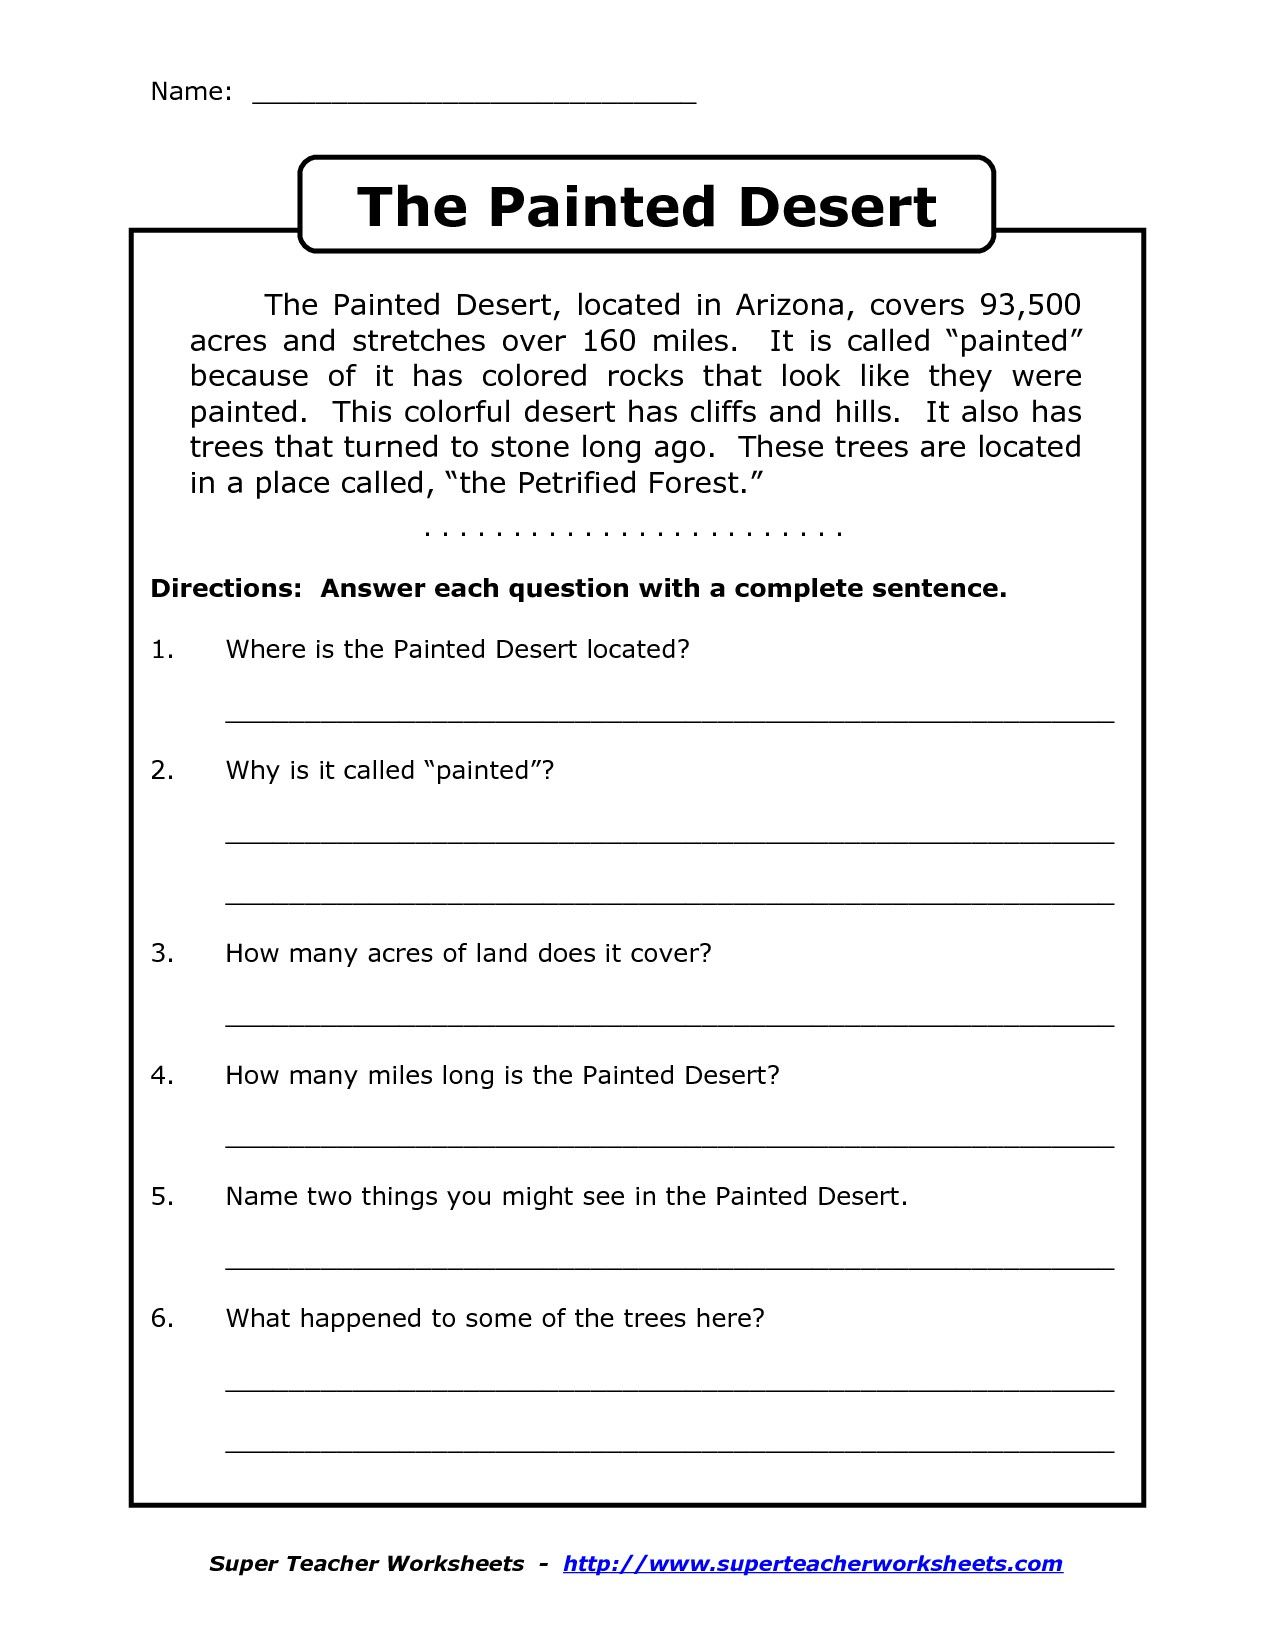 Worksheet Free Reading Comprehension Worksheets For 3rd Grade grade 2 reading comprehension worksheets free coffemix worksheet coffemix